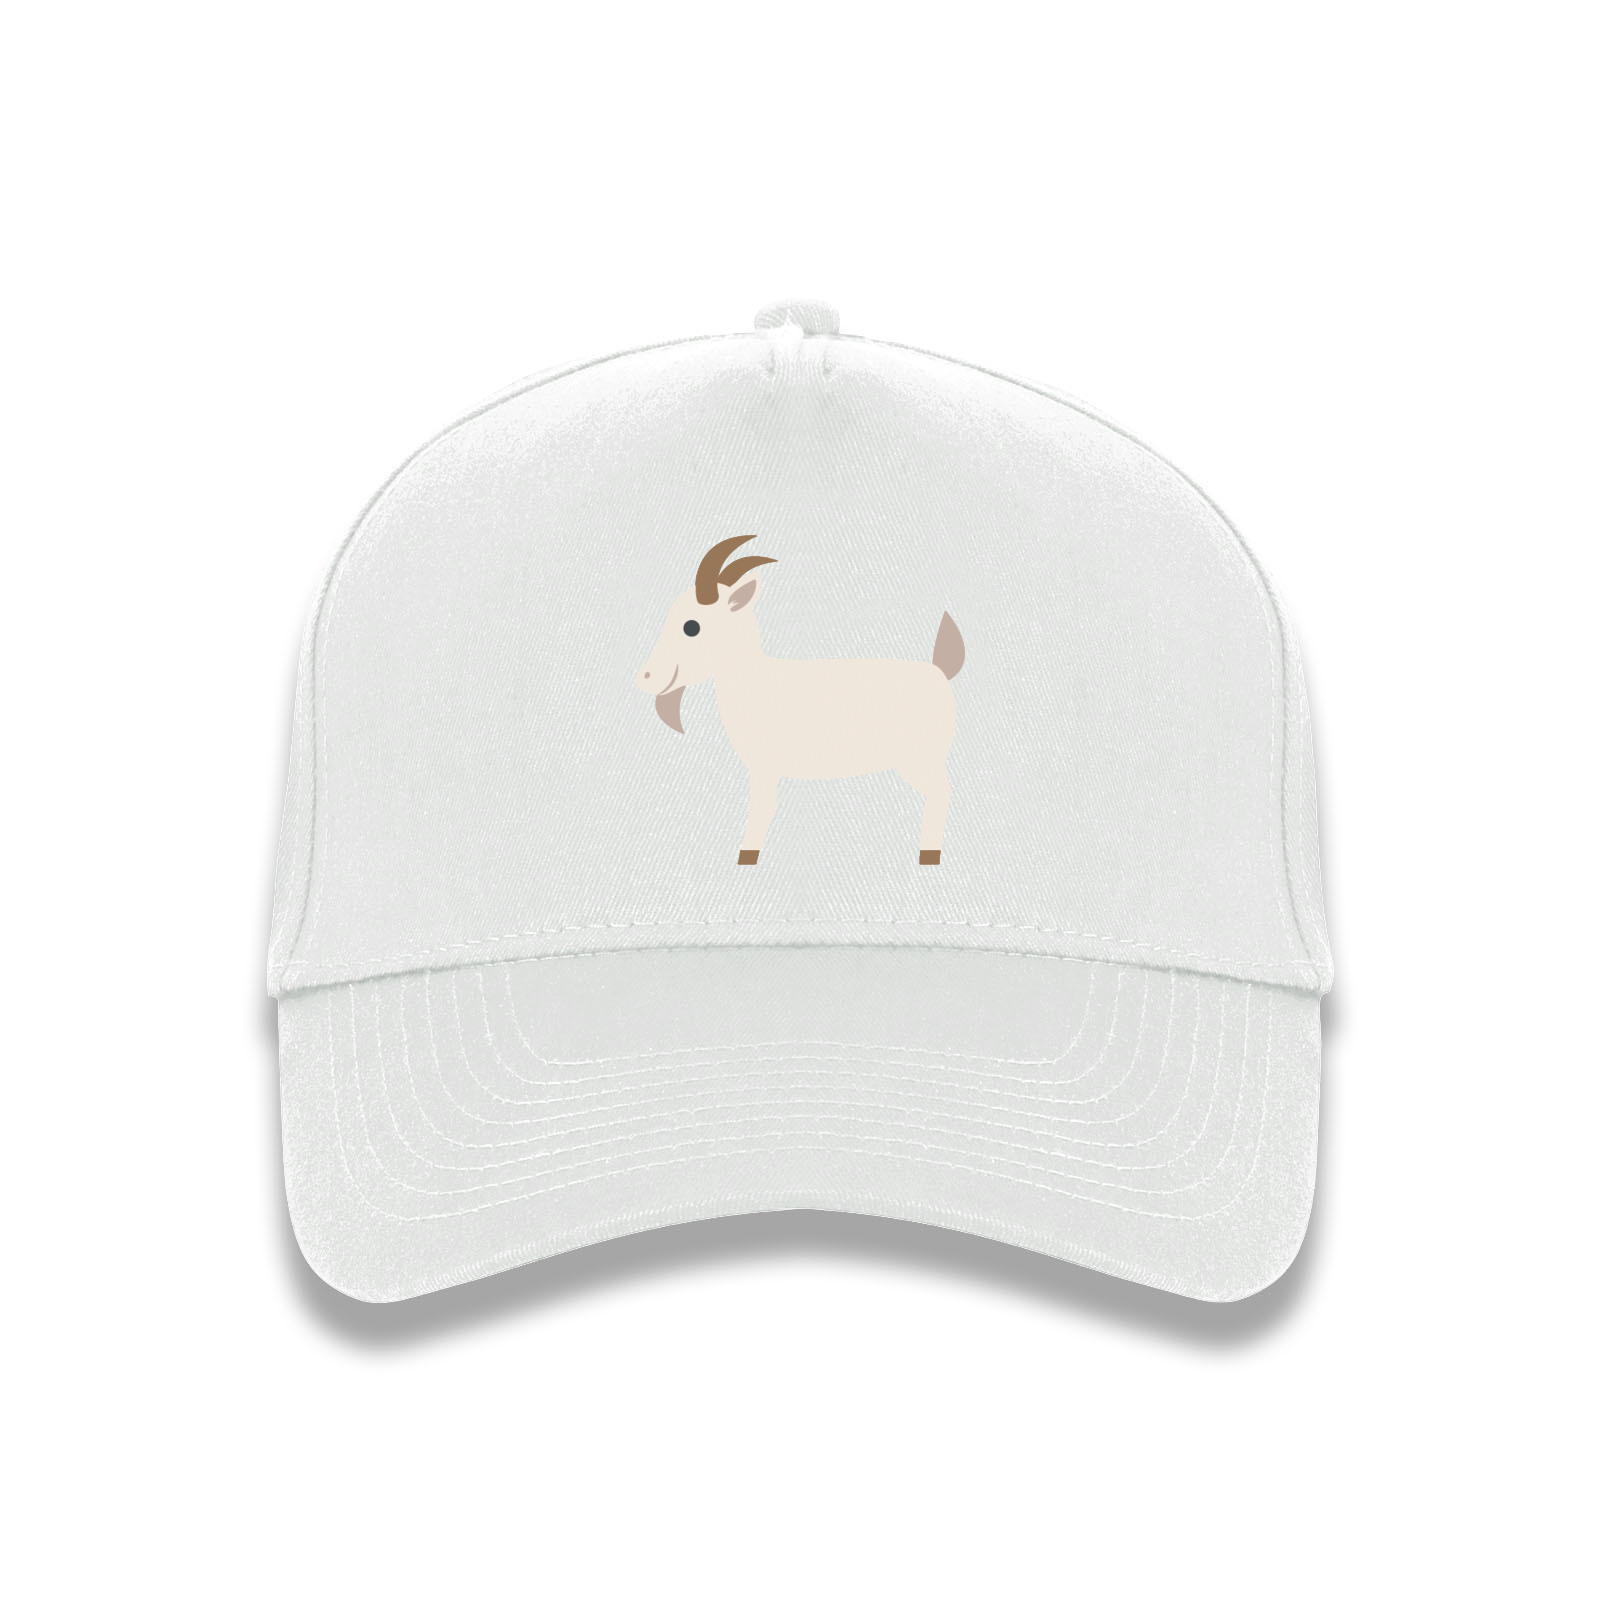 194c7e254fc Emoji Goat Baseball Cap. Available in many colours. Free delivery ...